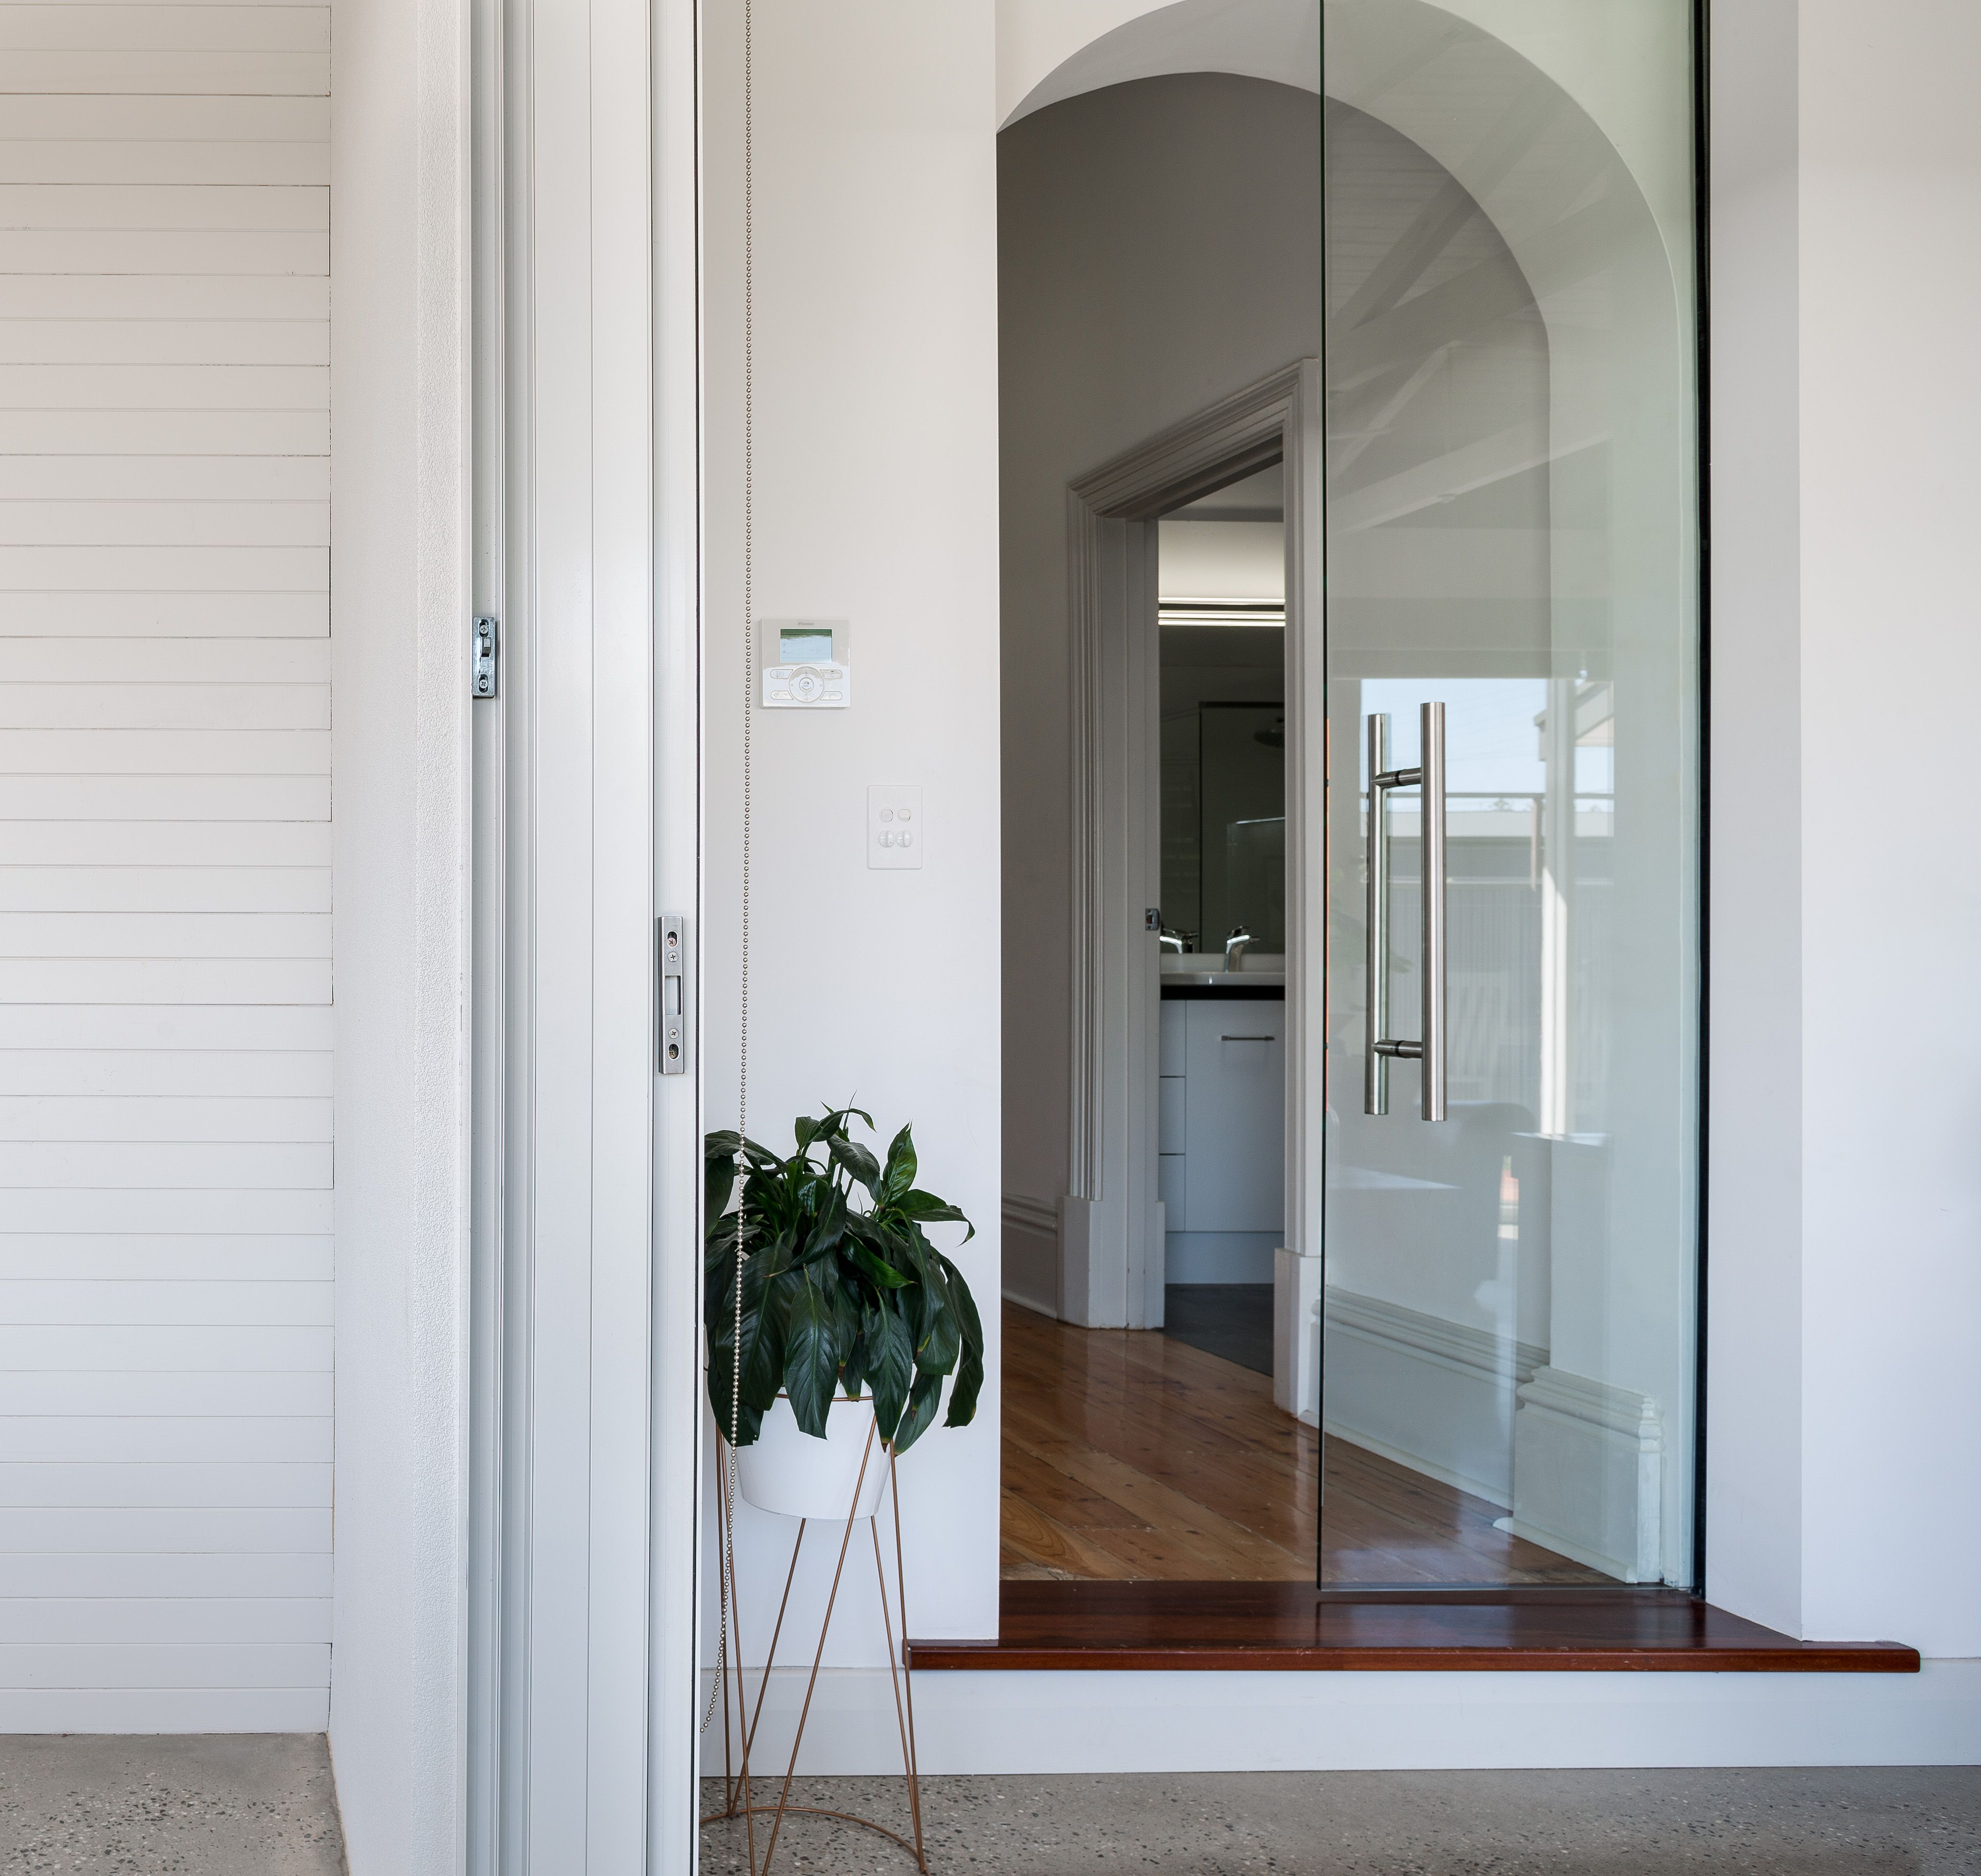 Old meets new modern sliding glass door marks the transition from